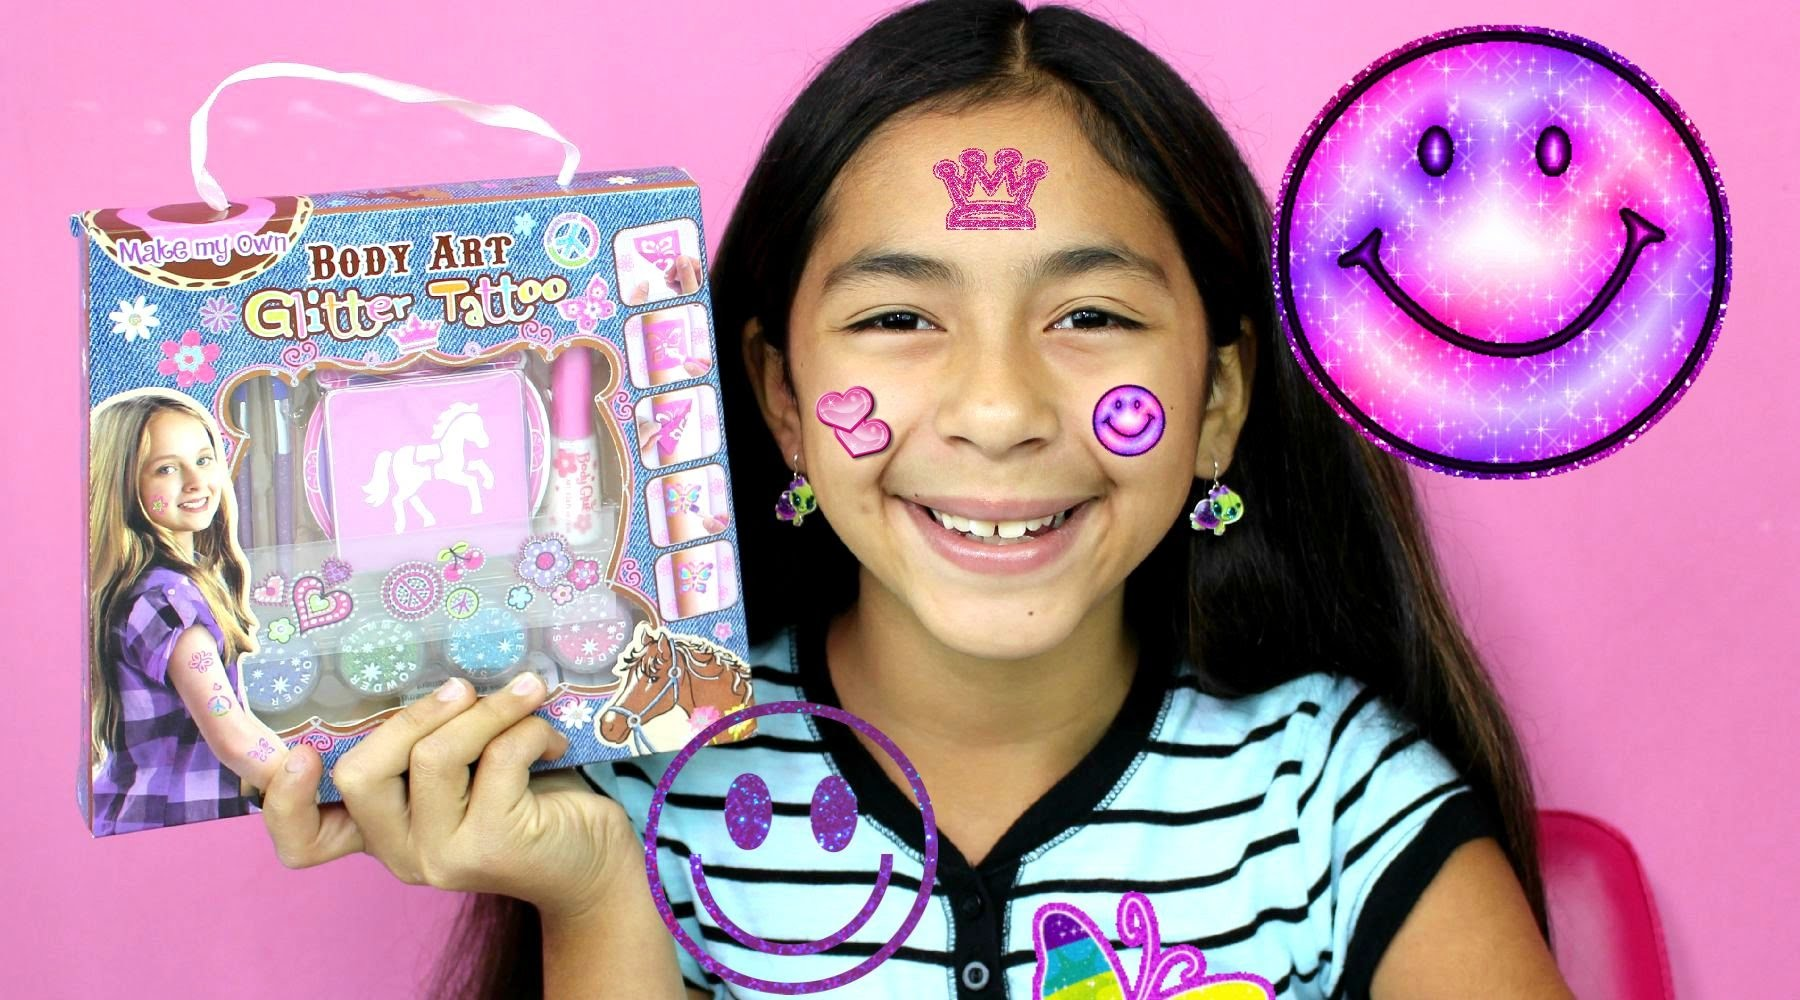 FUN DIY Body Art Glitter Tattoos How To Cute Sparkly Art | B2cutecupcakes